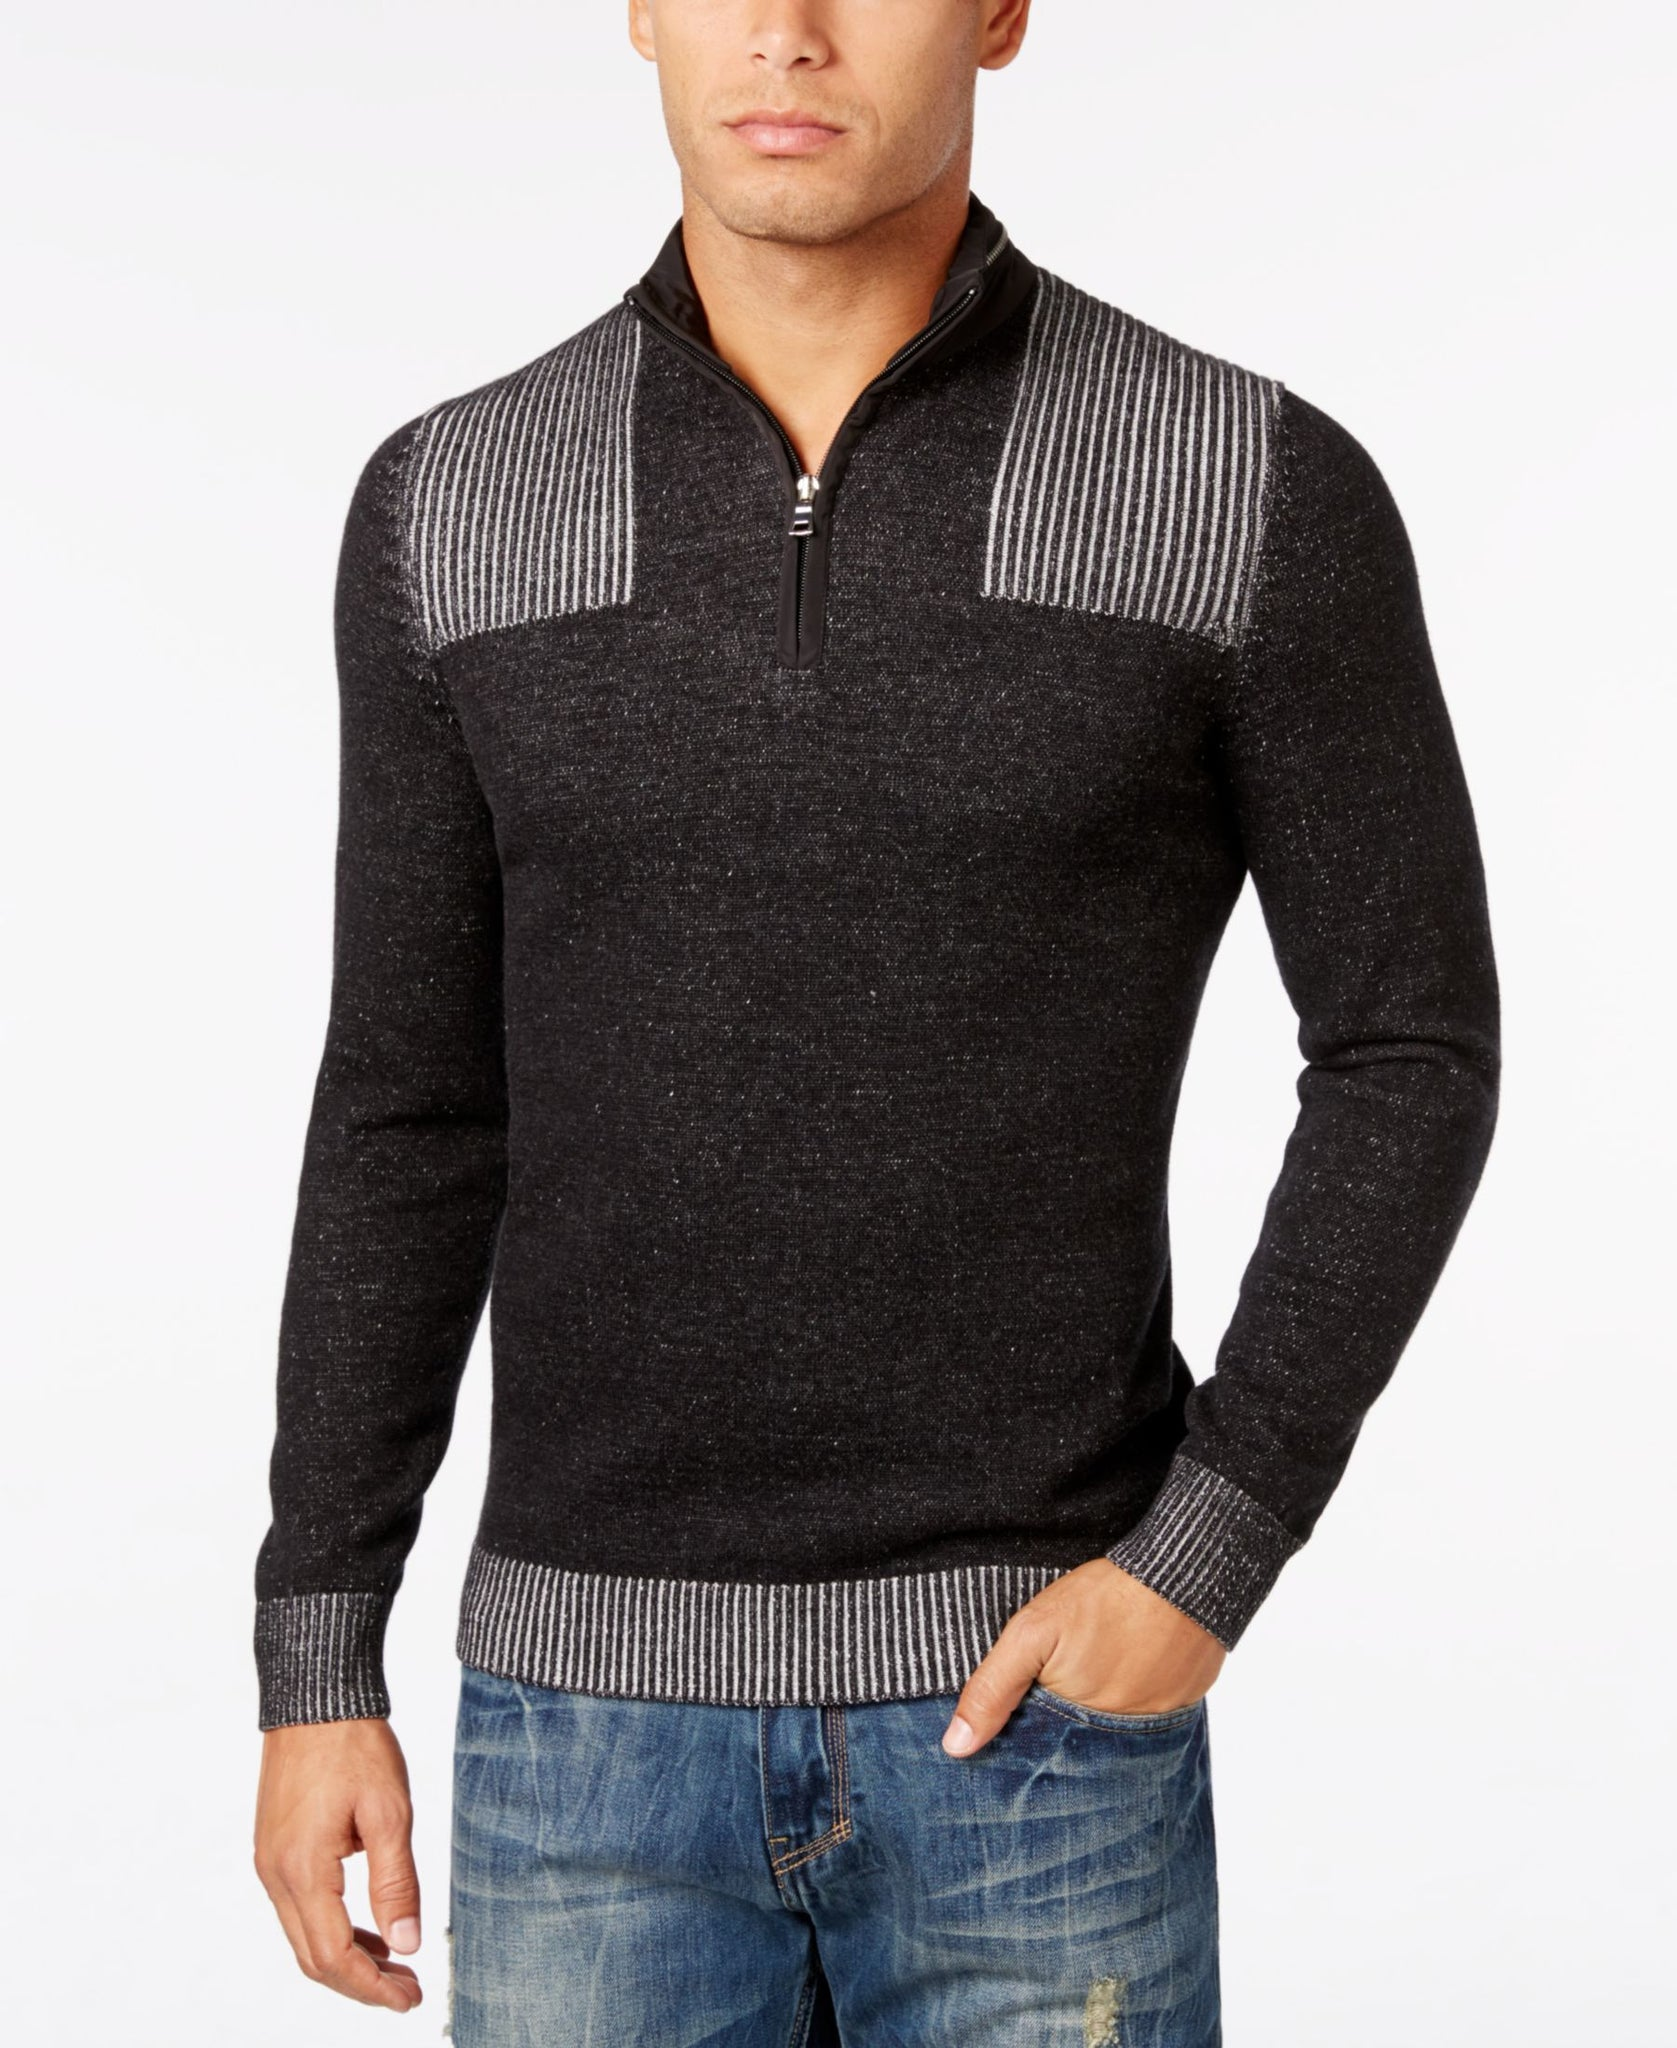 INC Medium 1/2 Zip Ribbed Knit Trim Sweater Black Medium